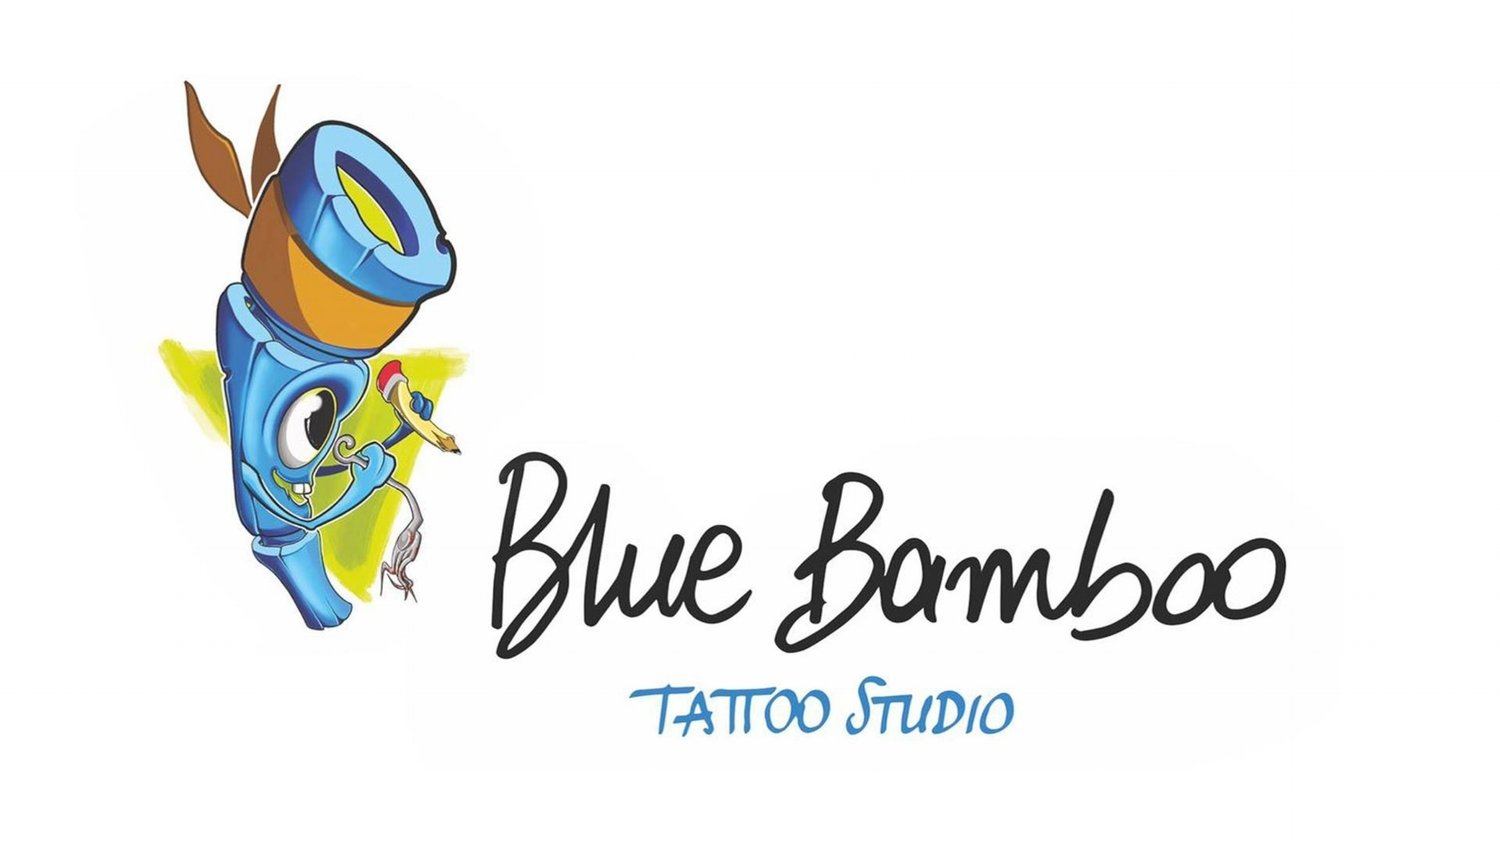 Blue Bamboo Tattoo Studio